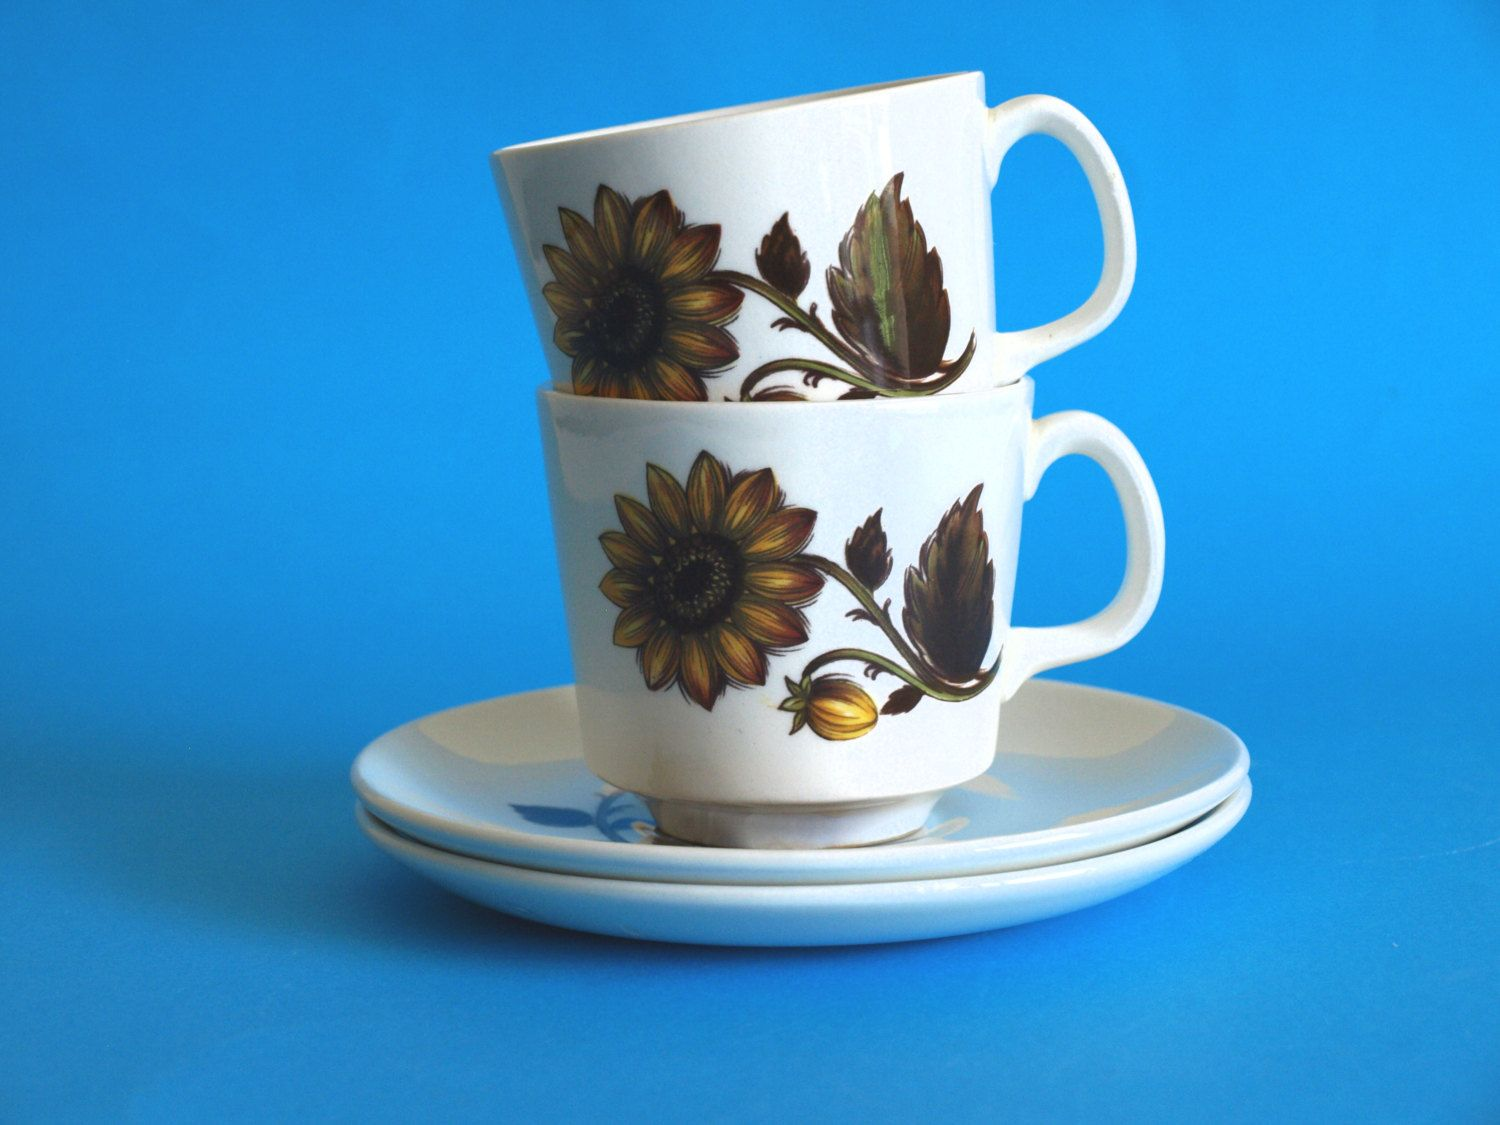 Vintage Johnson of Australia Sunflower Hayman Teacups and Saucers - Set of Two - Floral Tea Cups - Made in Australia - Johnson Brothers by FunkyKoala on ... & Reserved for Beth***Johnson of Australia Sunflower Teacups and ...